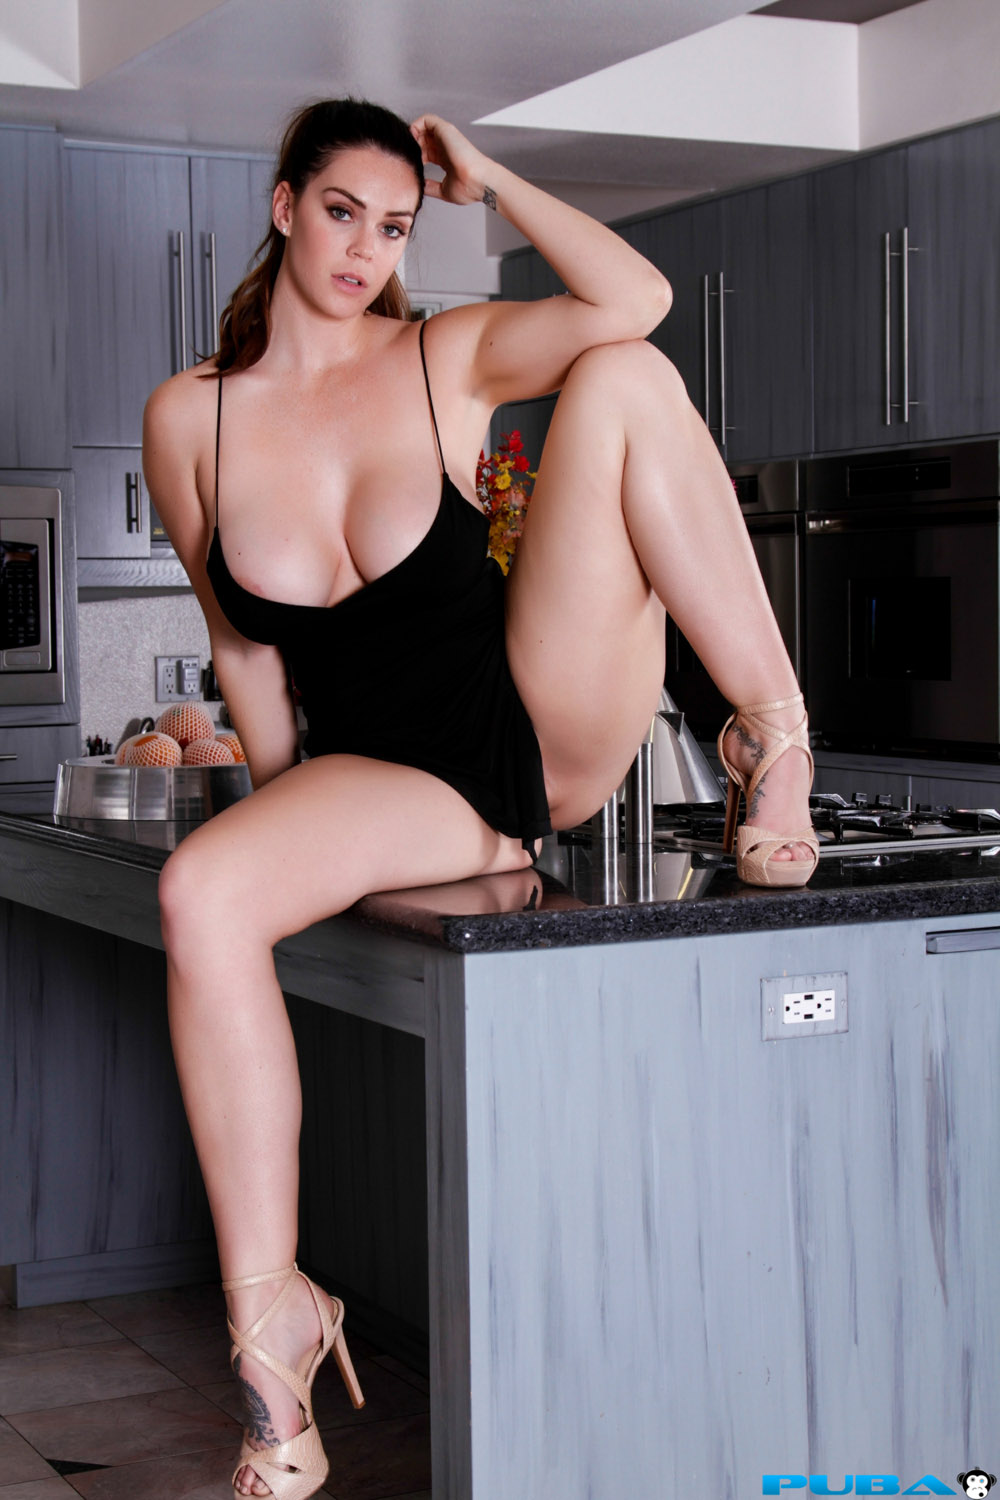 the naked kitchen photo